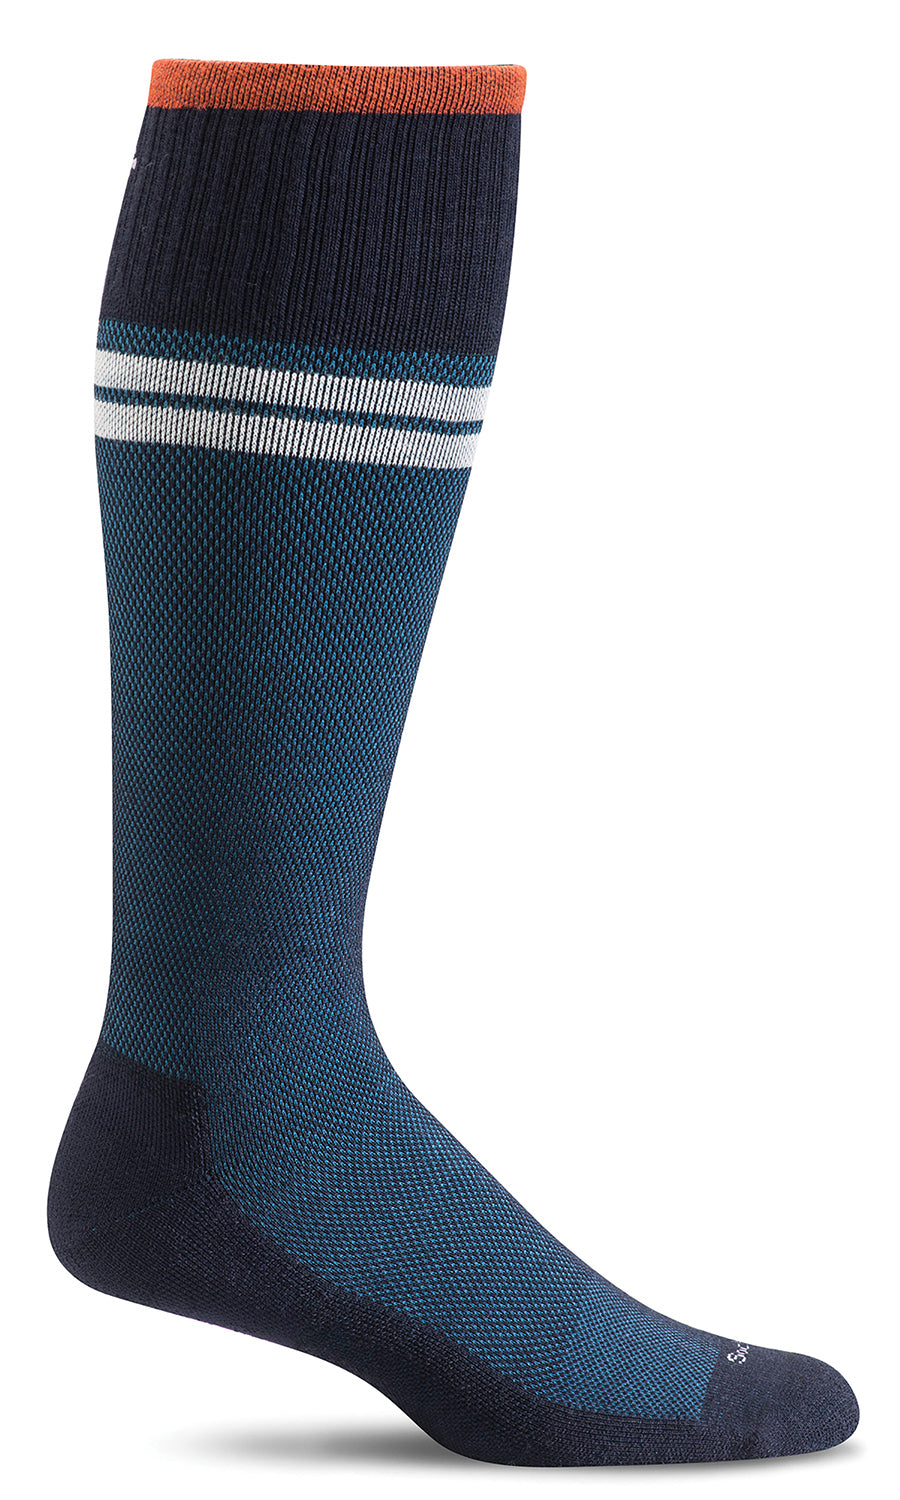 Sportster - Navy Moderate Compression